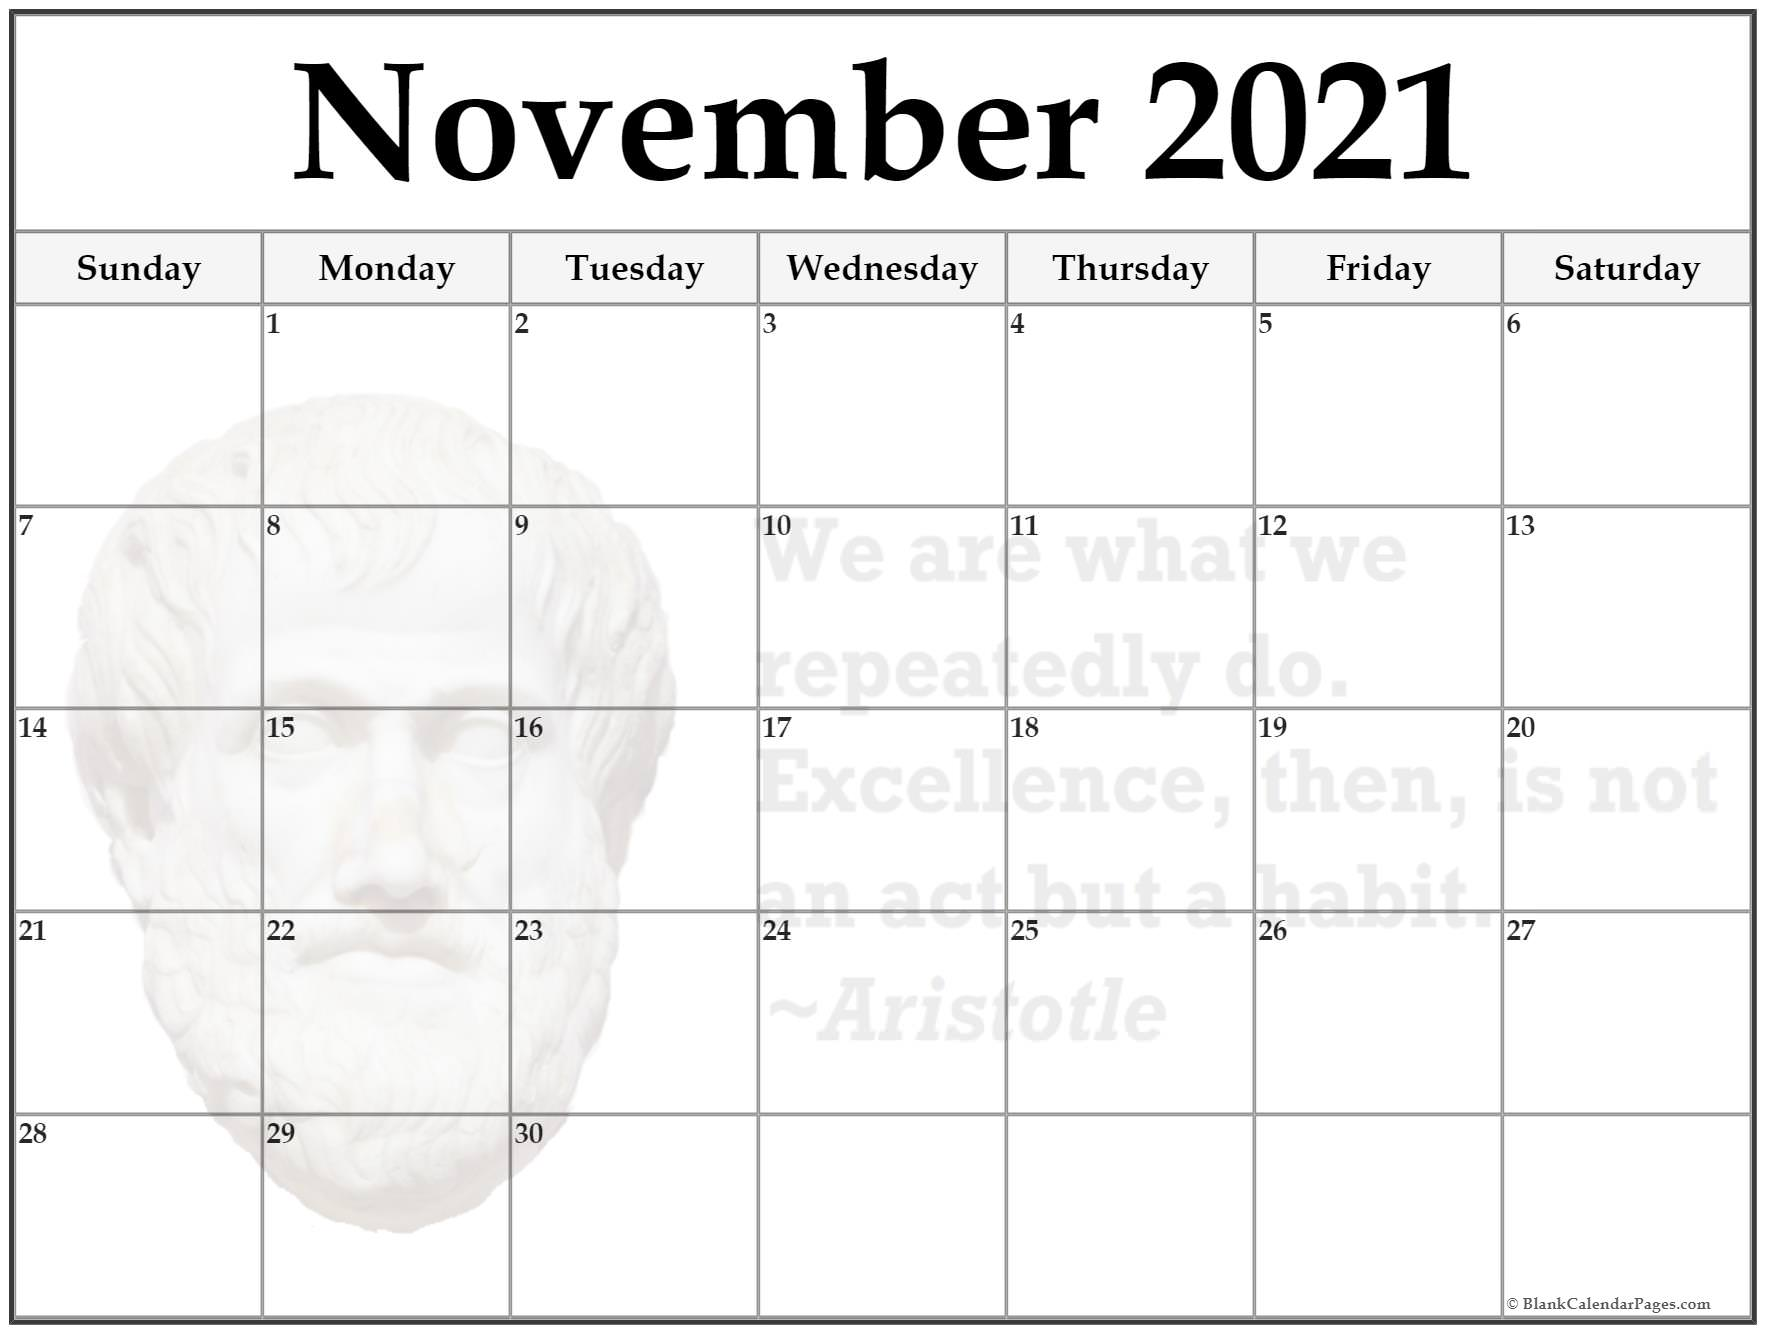 November calendar We are what we repeatedly do. excellence then is not an act but a habit ~Aristotle